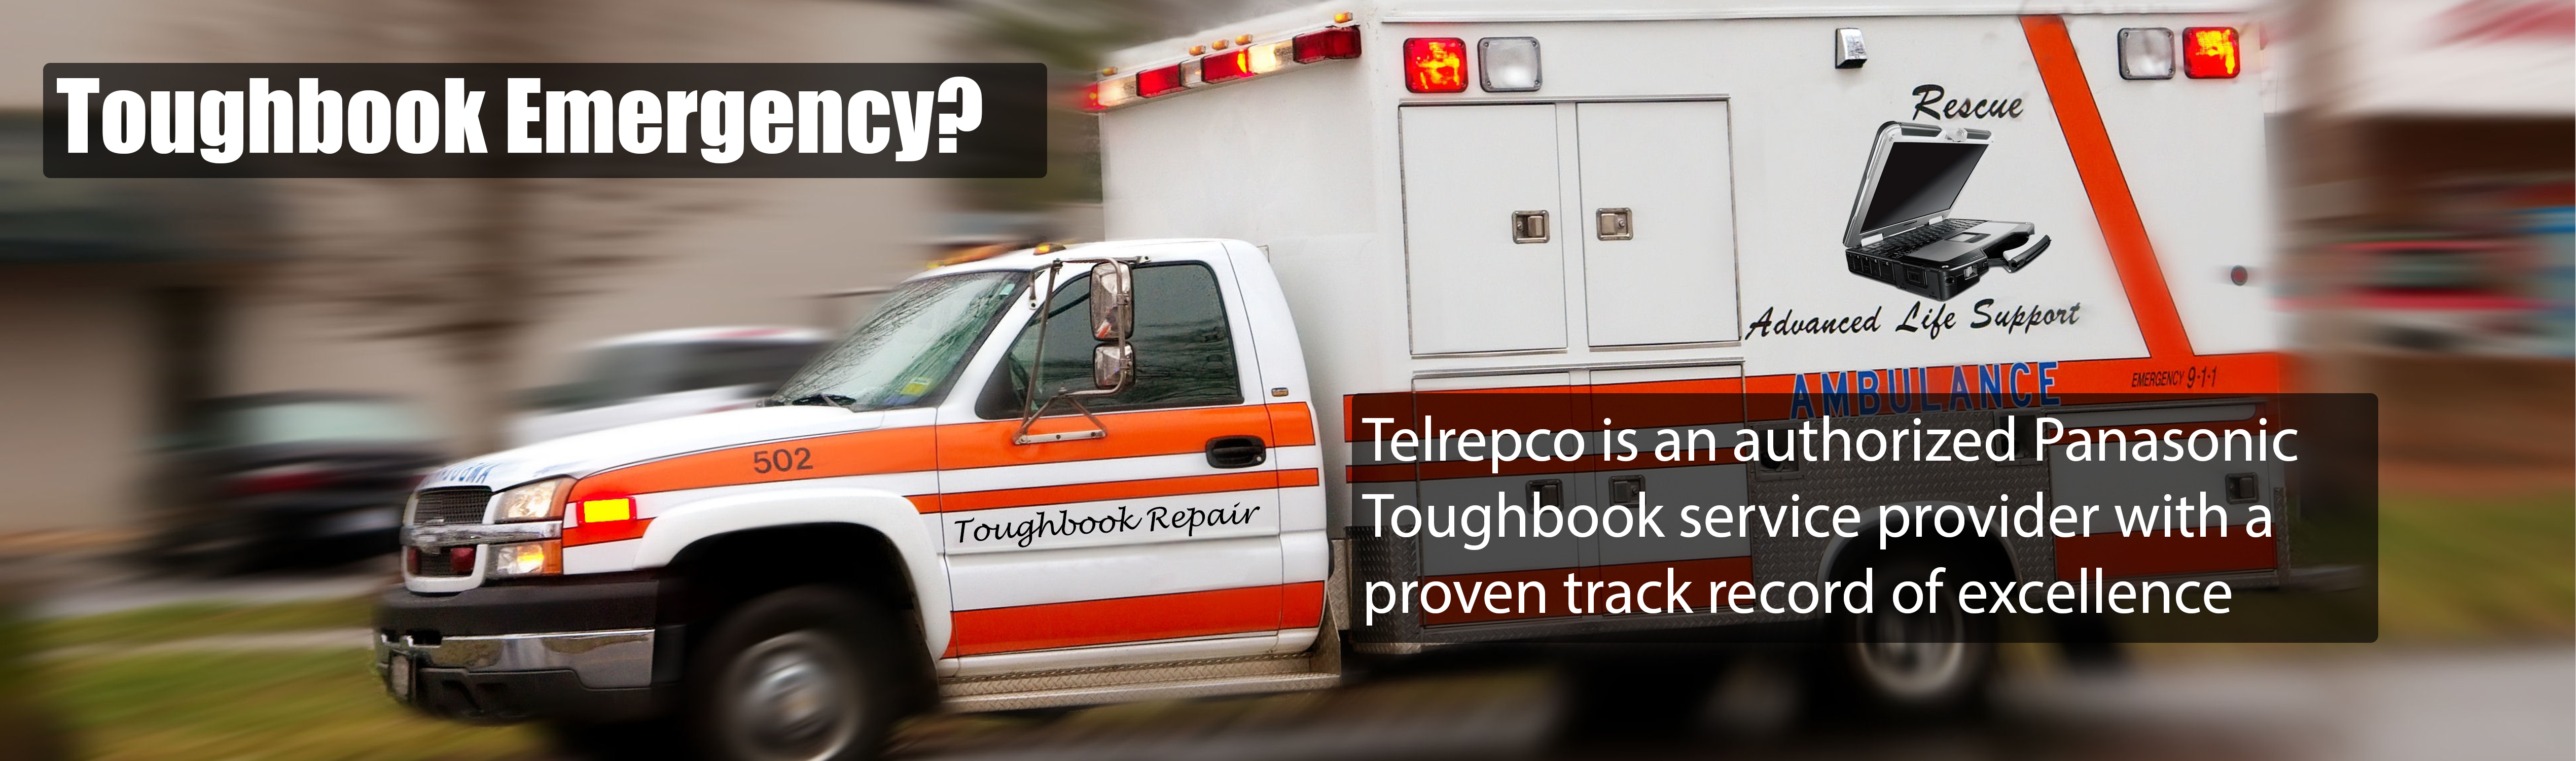 Telrepco is an authorized Panasonic Toughbook service provider with a proven track record of excellence.